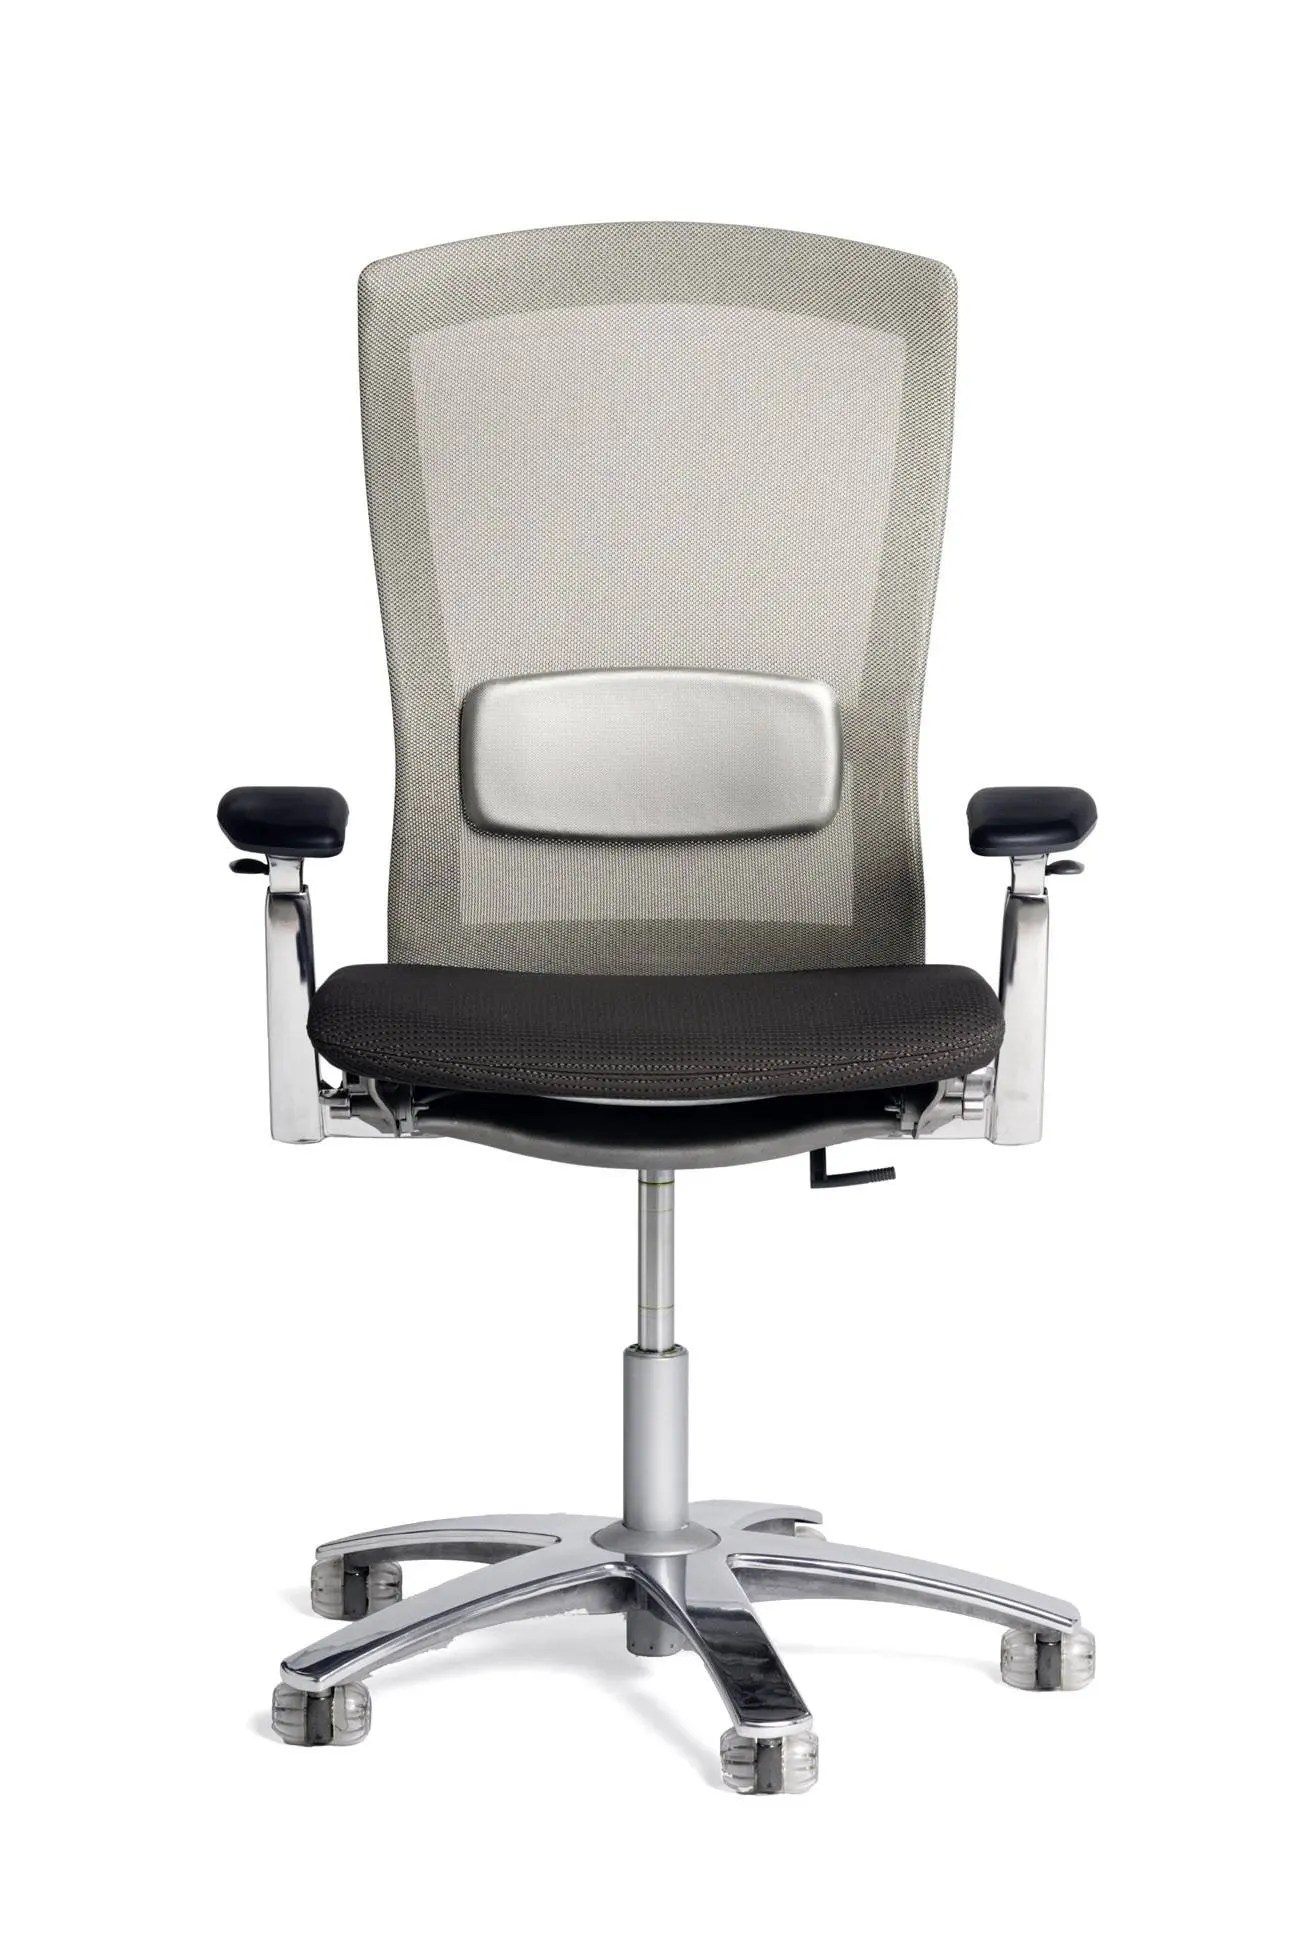 Sedia Diamond Knoll Knoll Formway Design Studio Life Chair Build Your Own